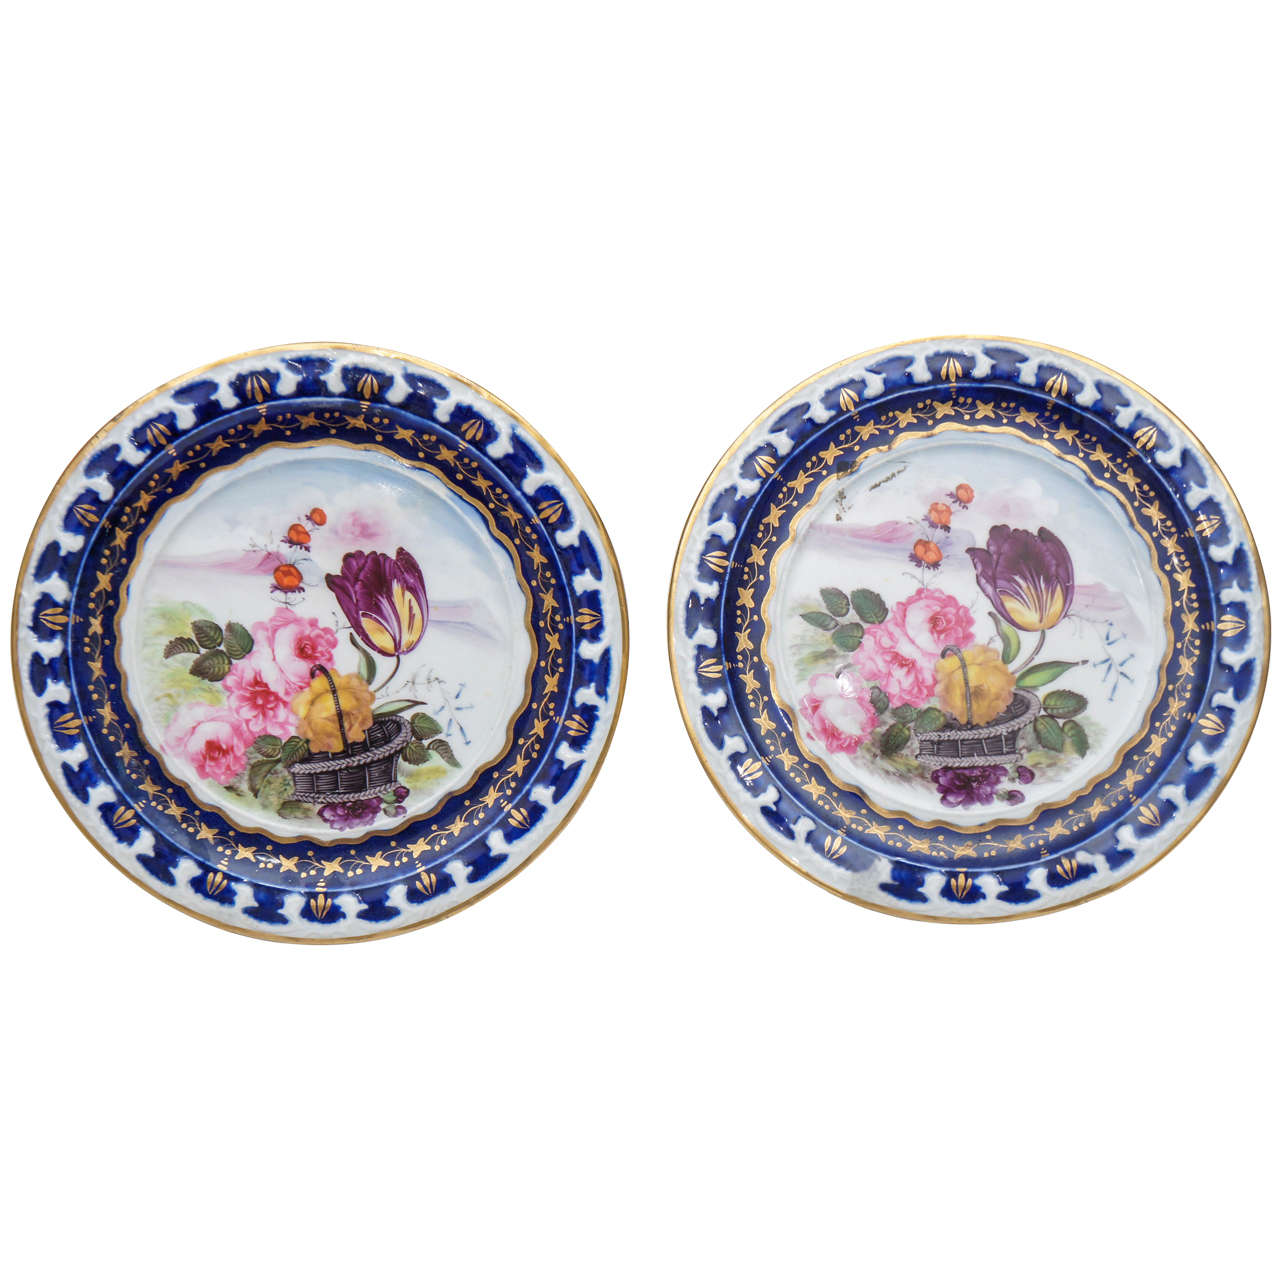 Pair of Vieux Paris Small Decorative Plates For Sale  sc 1 st  1stDibs & Pair of Vieux Paris Small Decorative Plates For Sale at 1stdibs